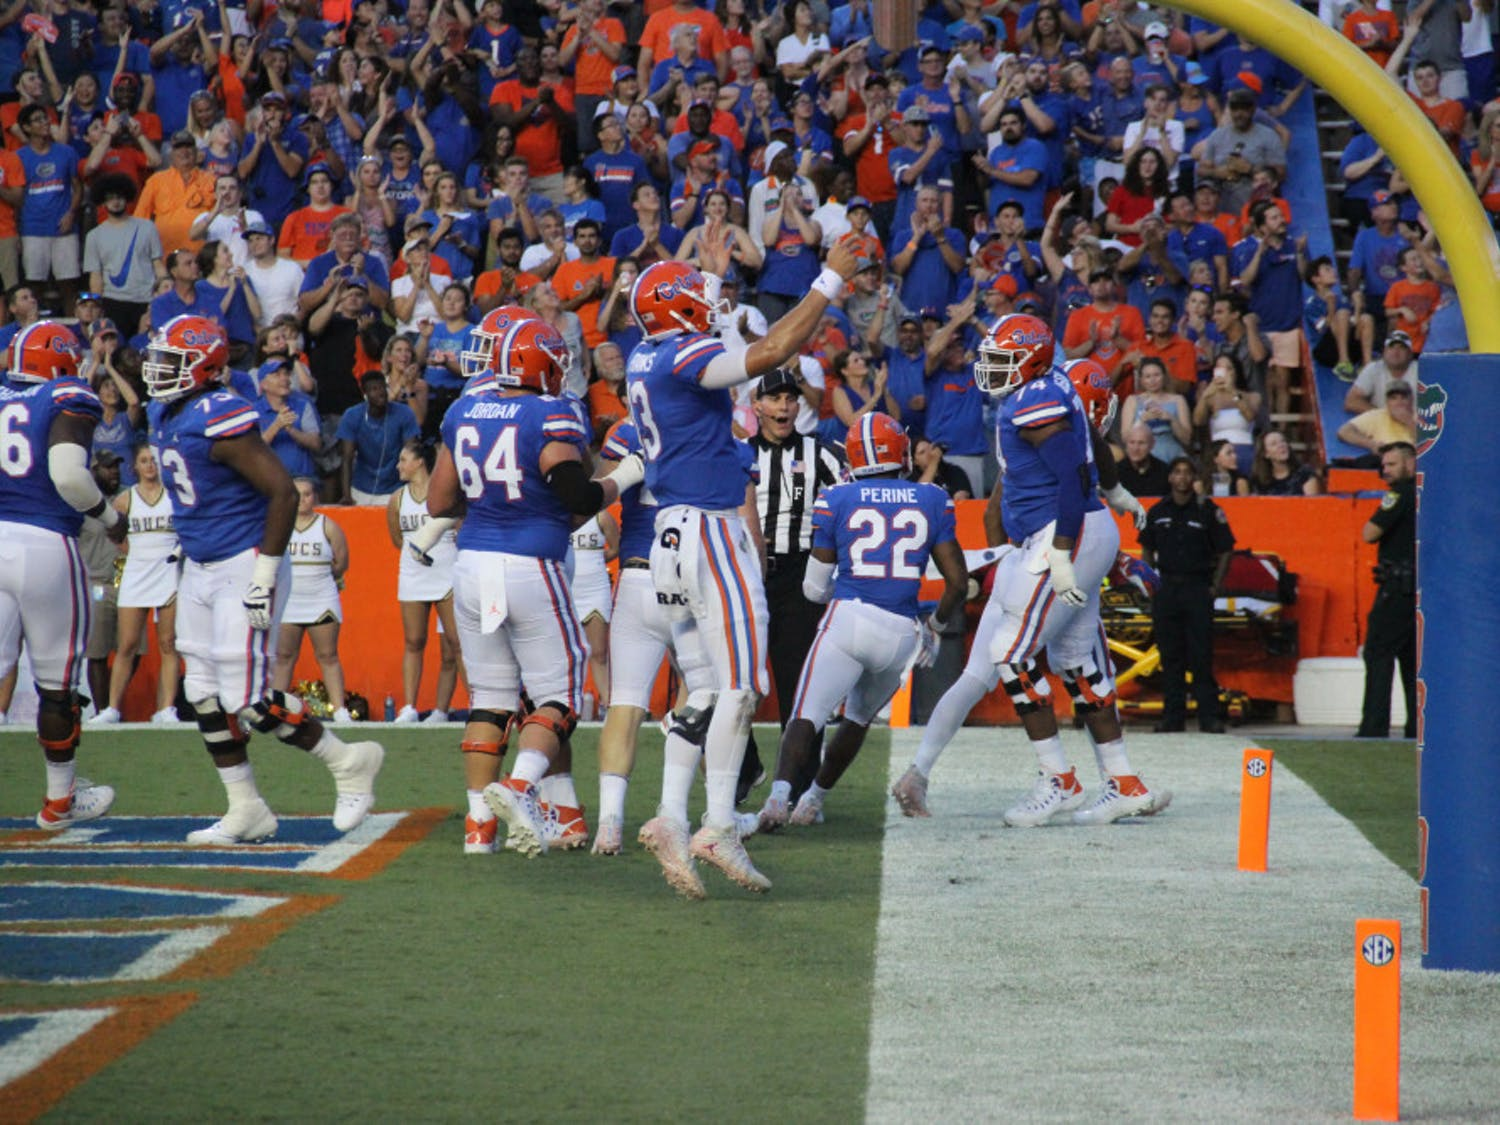 """Quarterback Feleipe Franks said the Gators' win over Charleston Southern was one of the more fun games he has been a part of.""""Guys are getting excited when we score,"""" he said."""